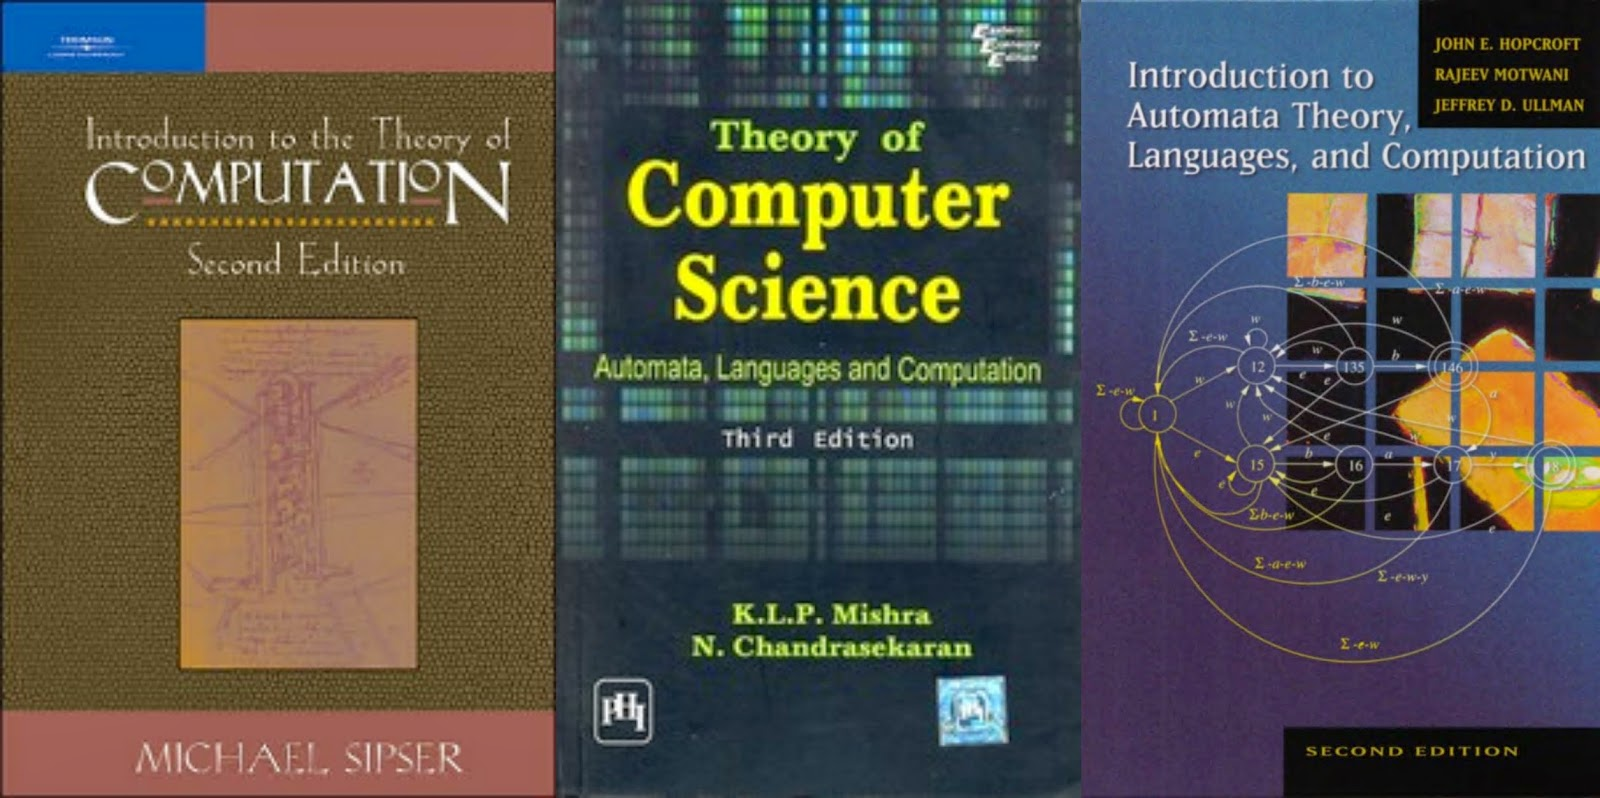 Pdf computer mishra klp science of theory